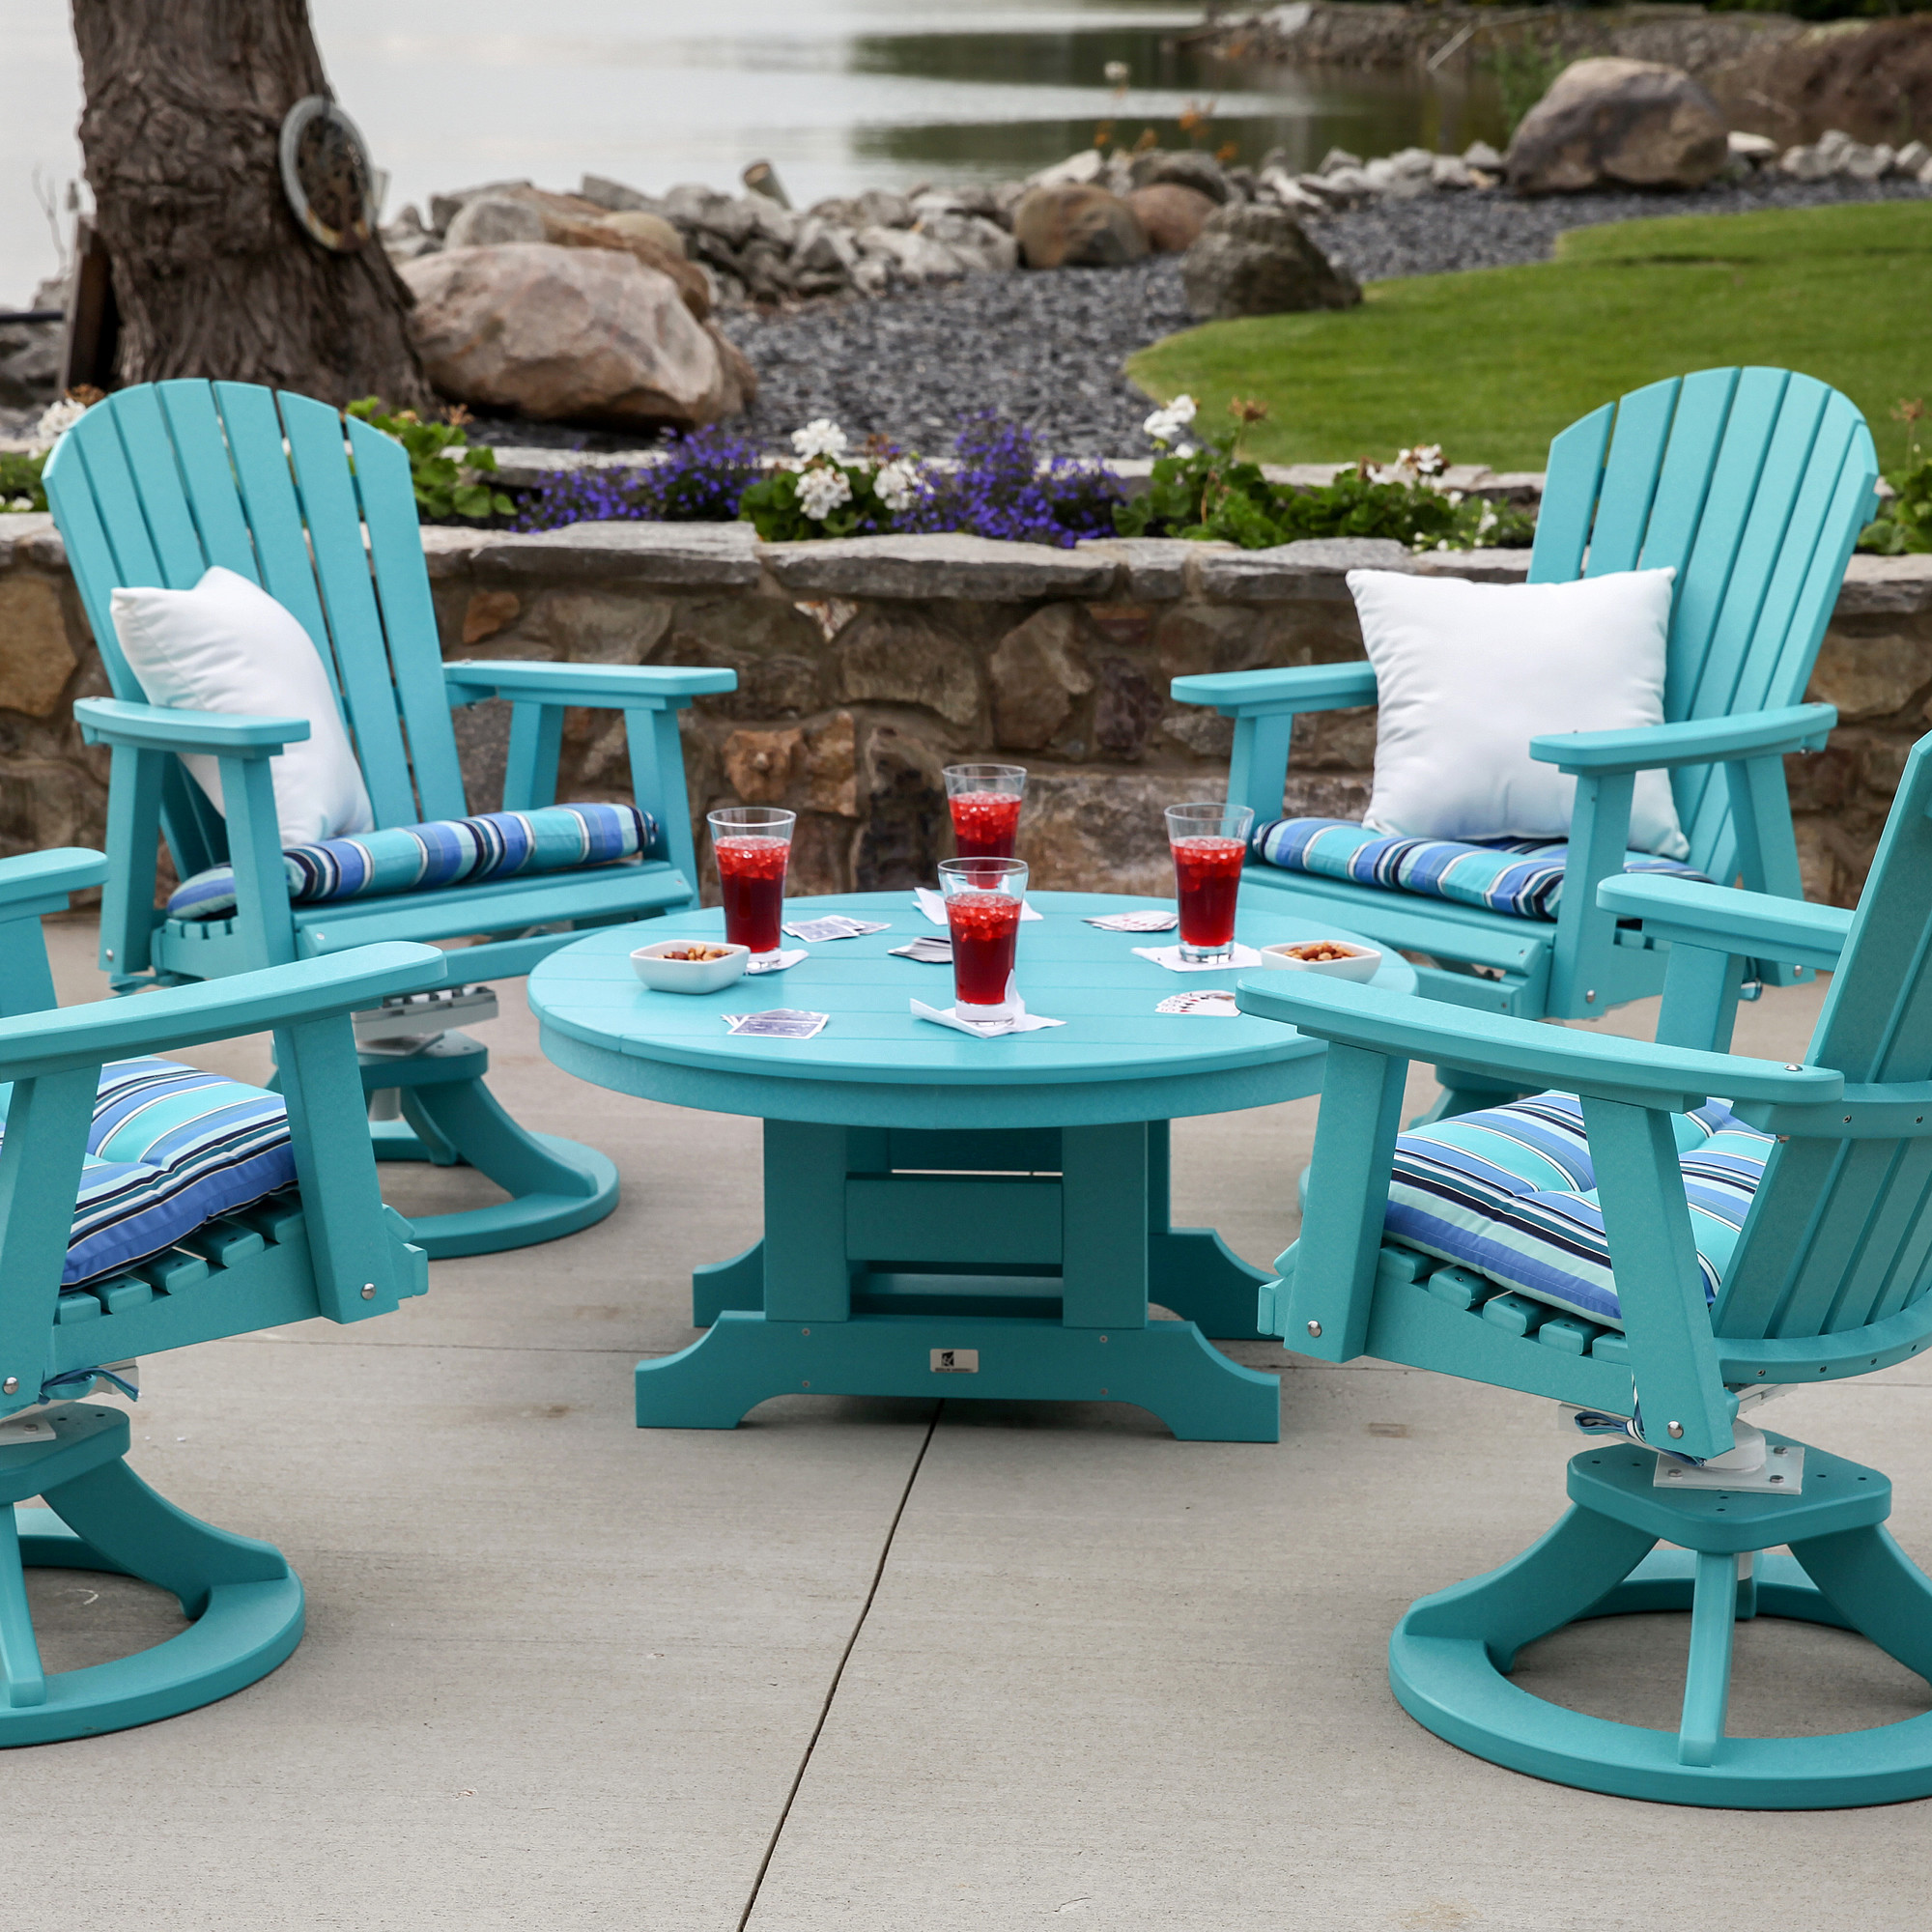 Buy Berlin Gardens Outdoor Furniture Polywood Patio Furniture